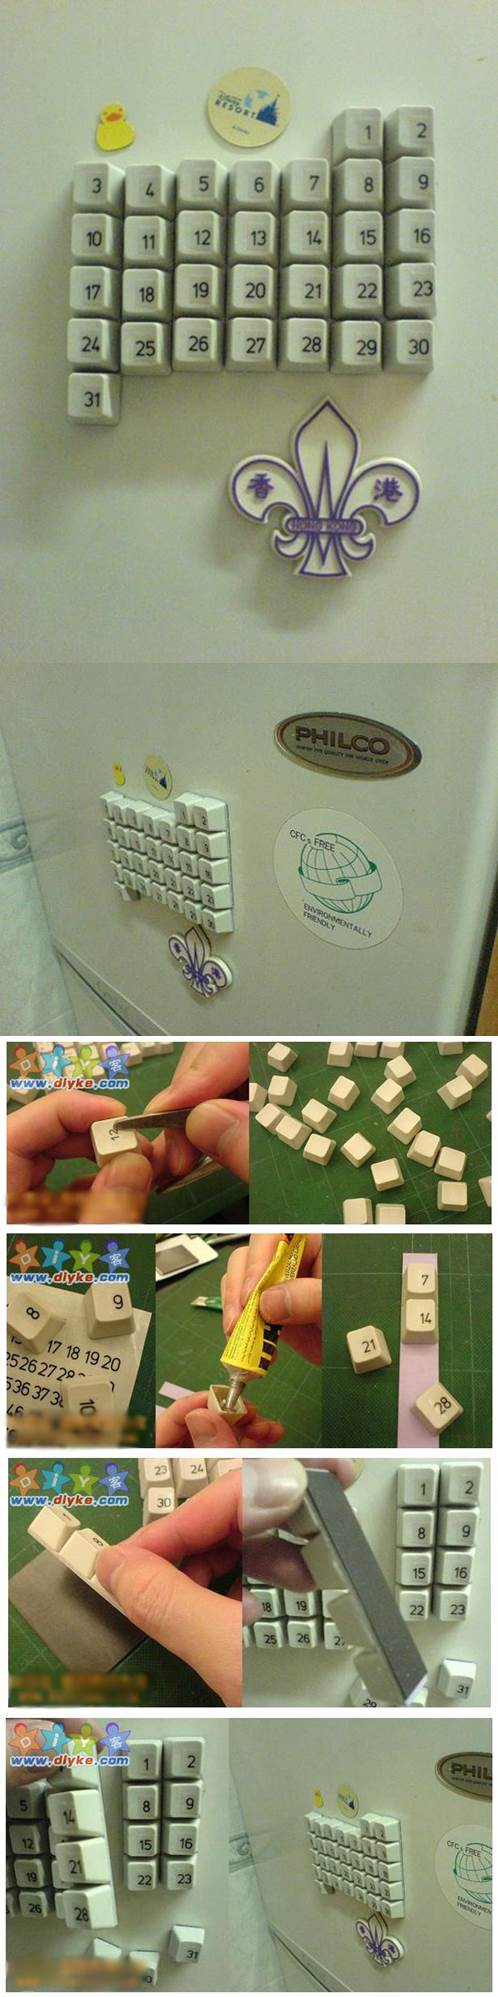 Diy Refrigerator Calendar : Diy fridge magnet calendar from old keyboard